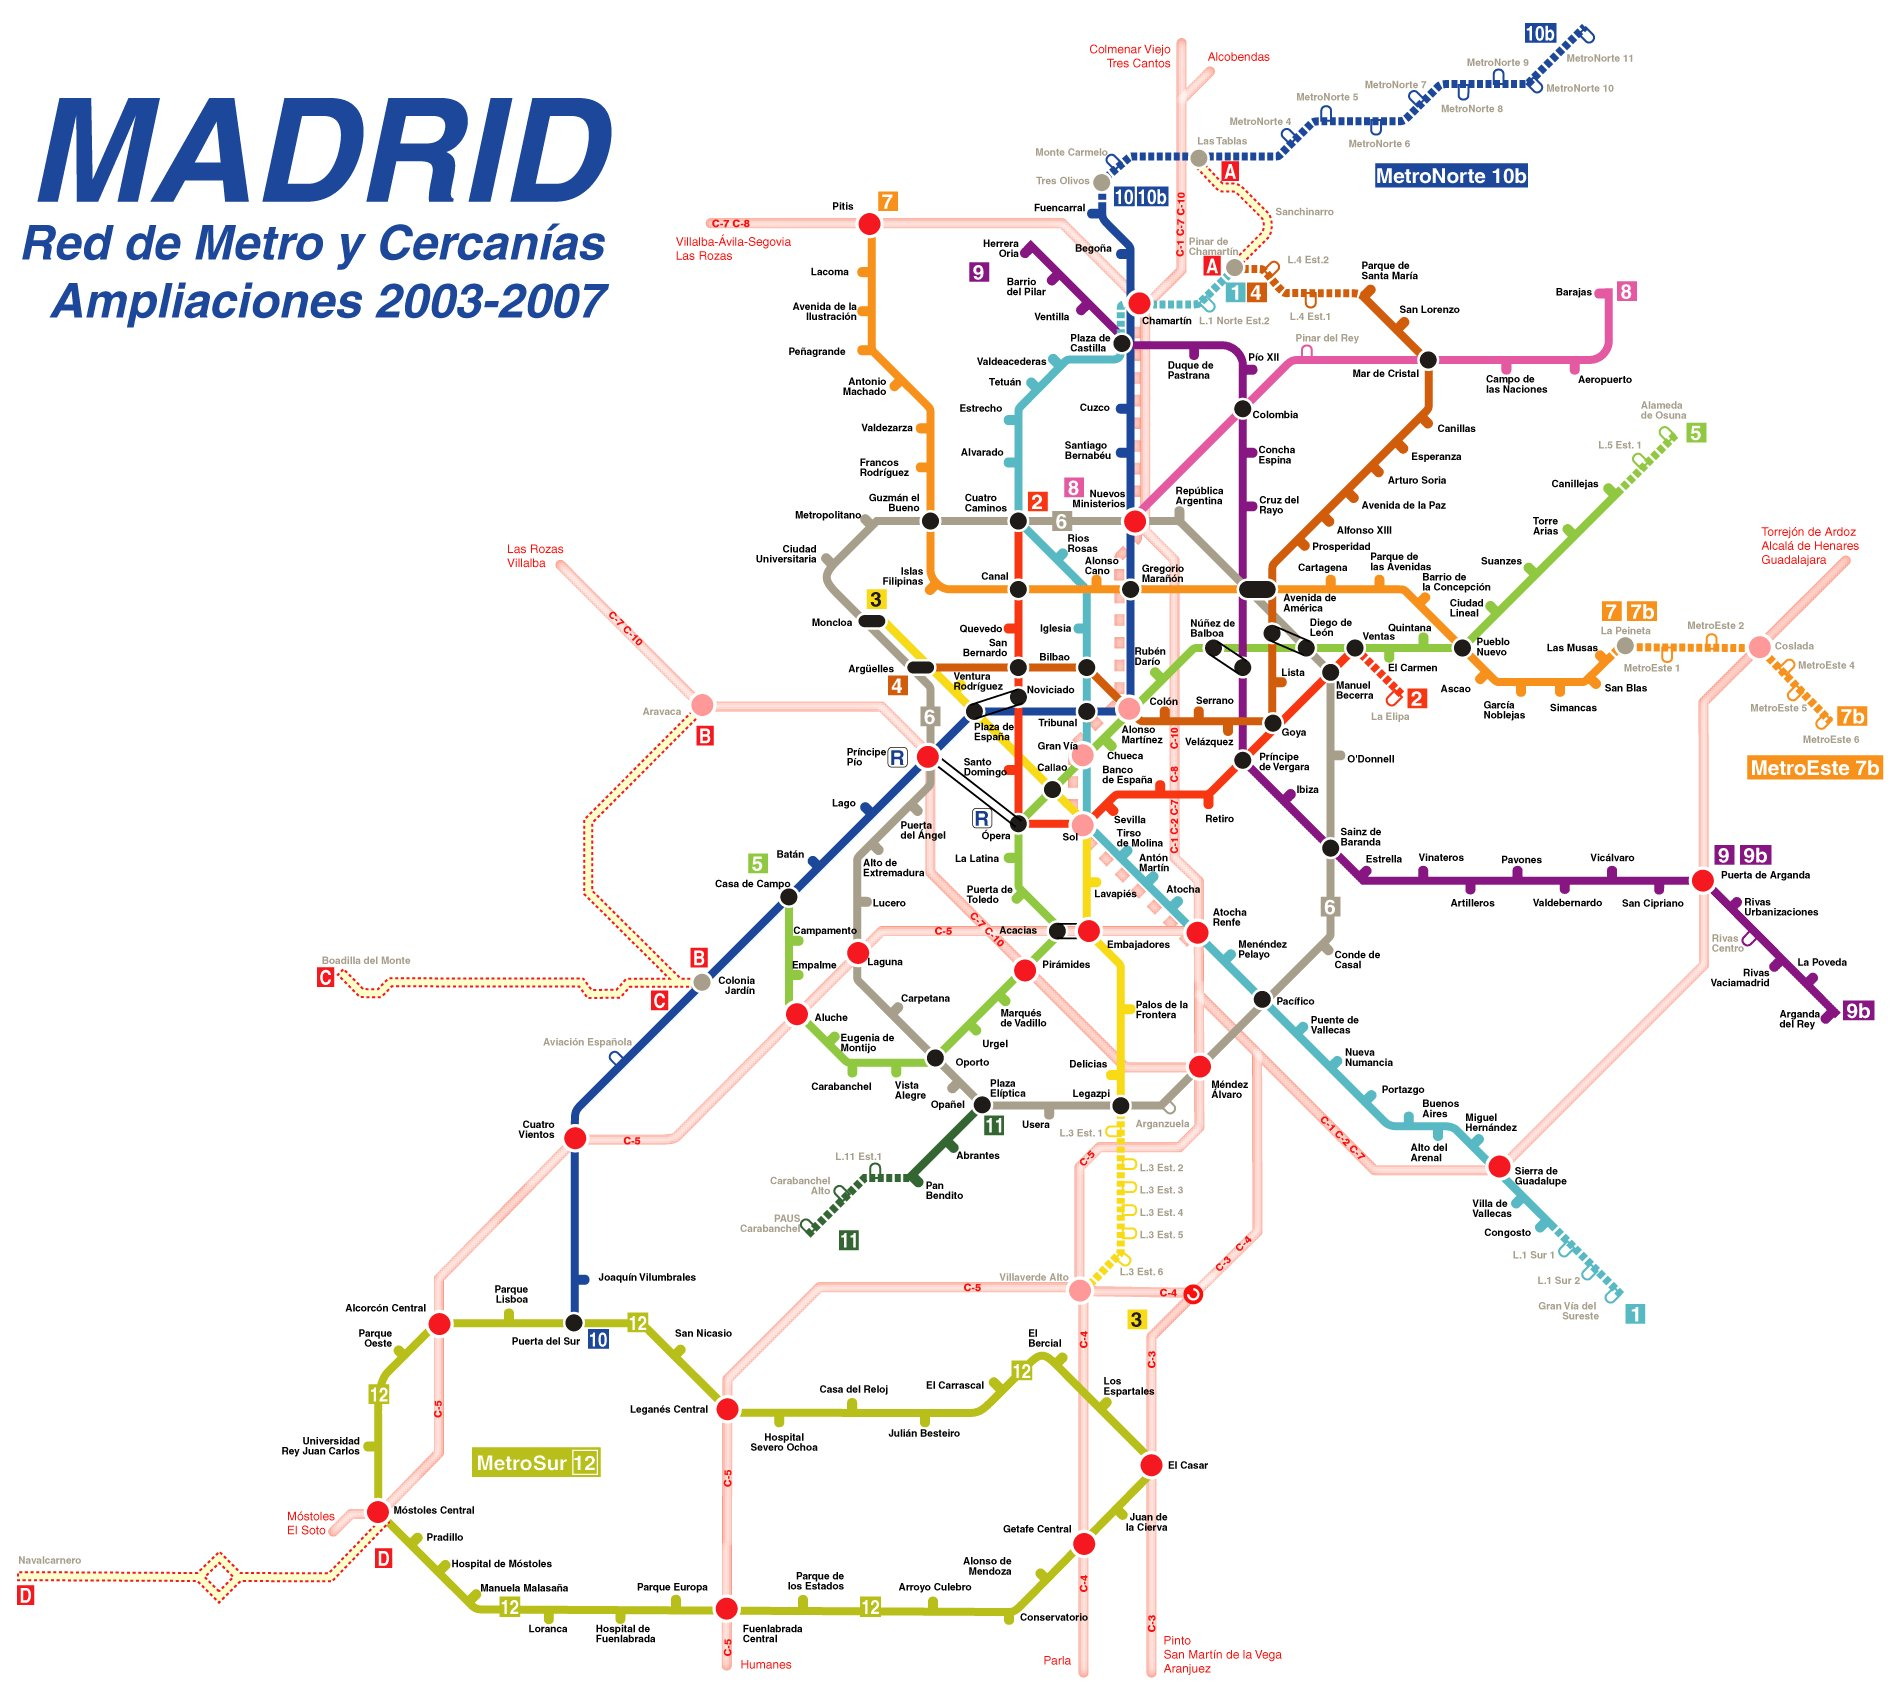 Metro network and Cercanías extensions 2003-2007